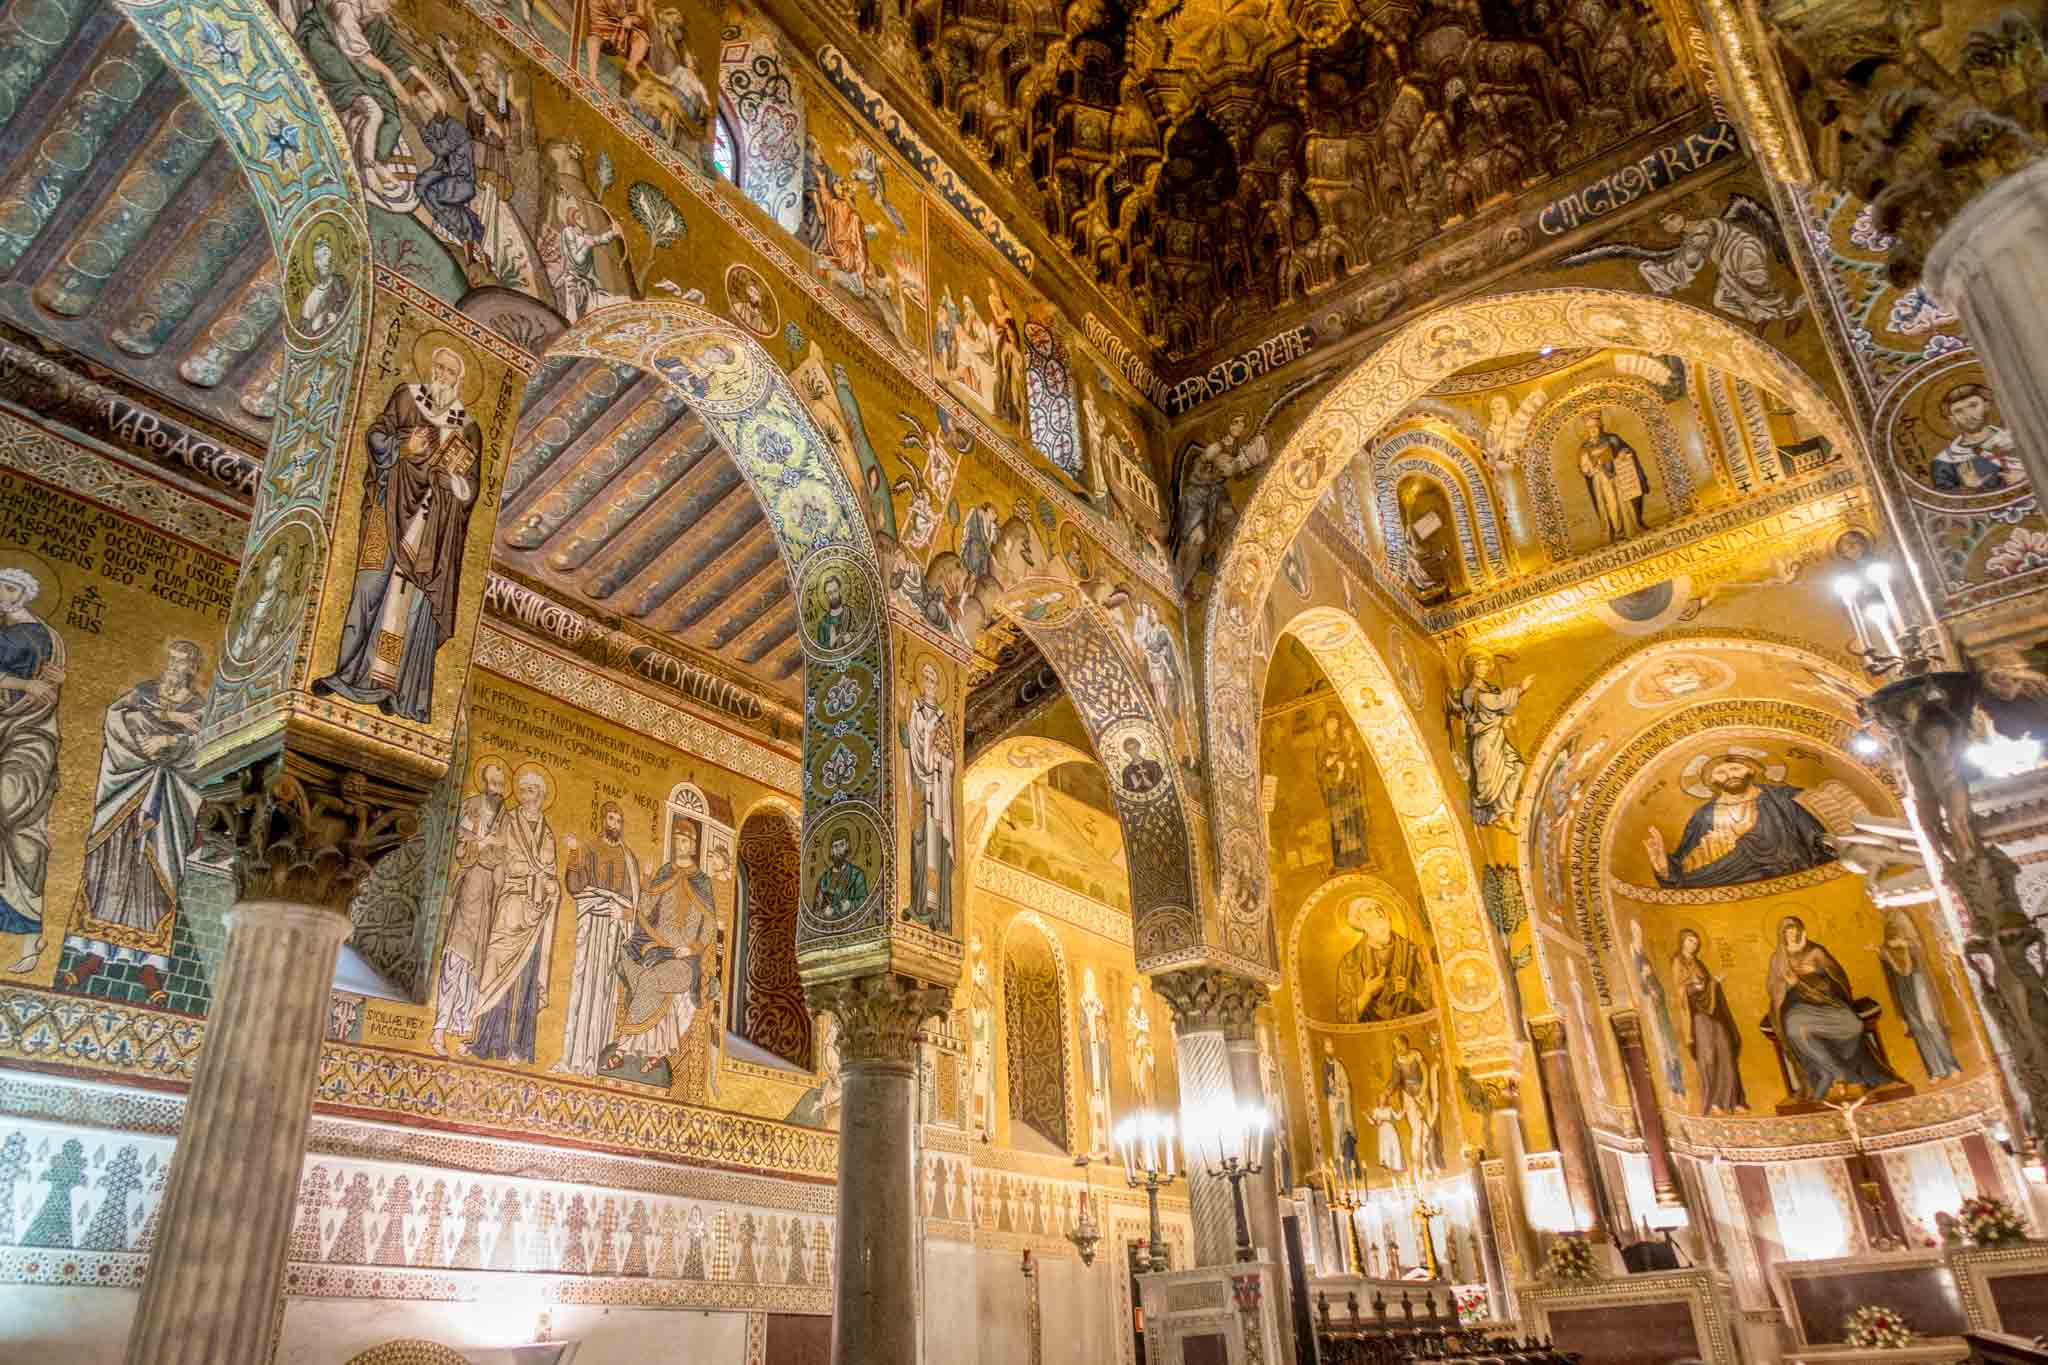 Chapel with pillars and vaulted ceiling covered with gold mosaics at the Palatine Chapel